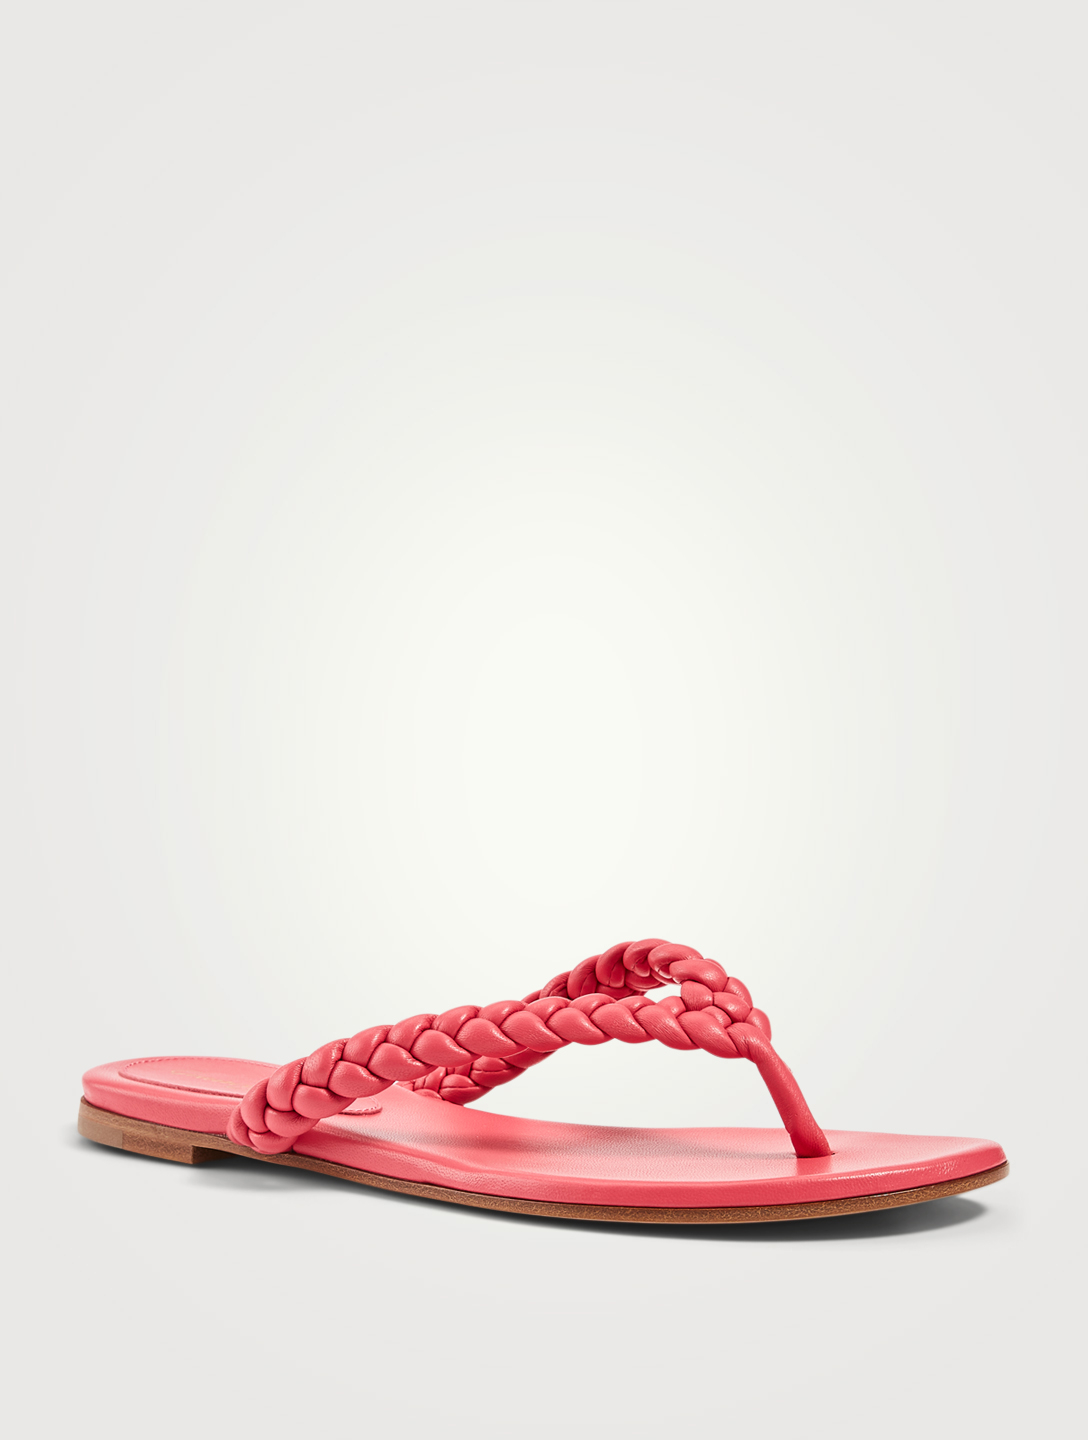 GIANVITO ROSSI Tropea 05 Woven Leather Thong Sandals Women's Pink